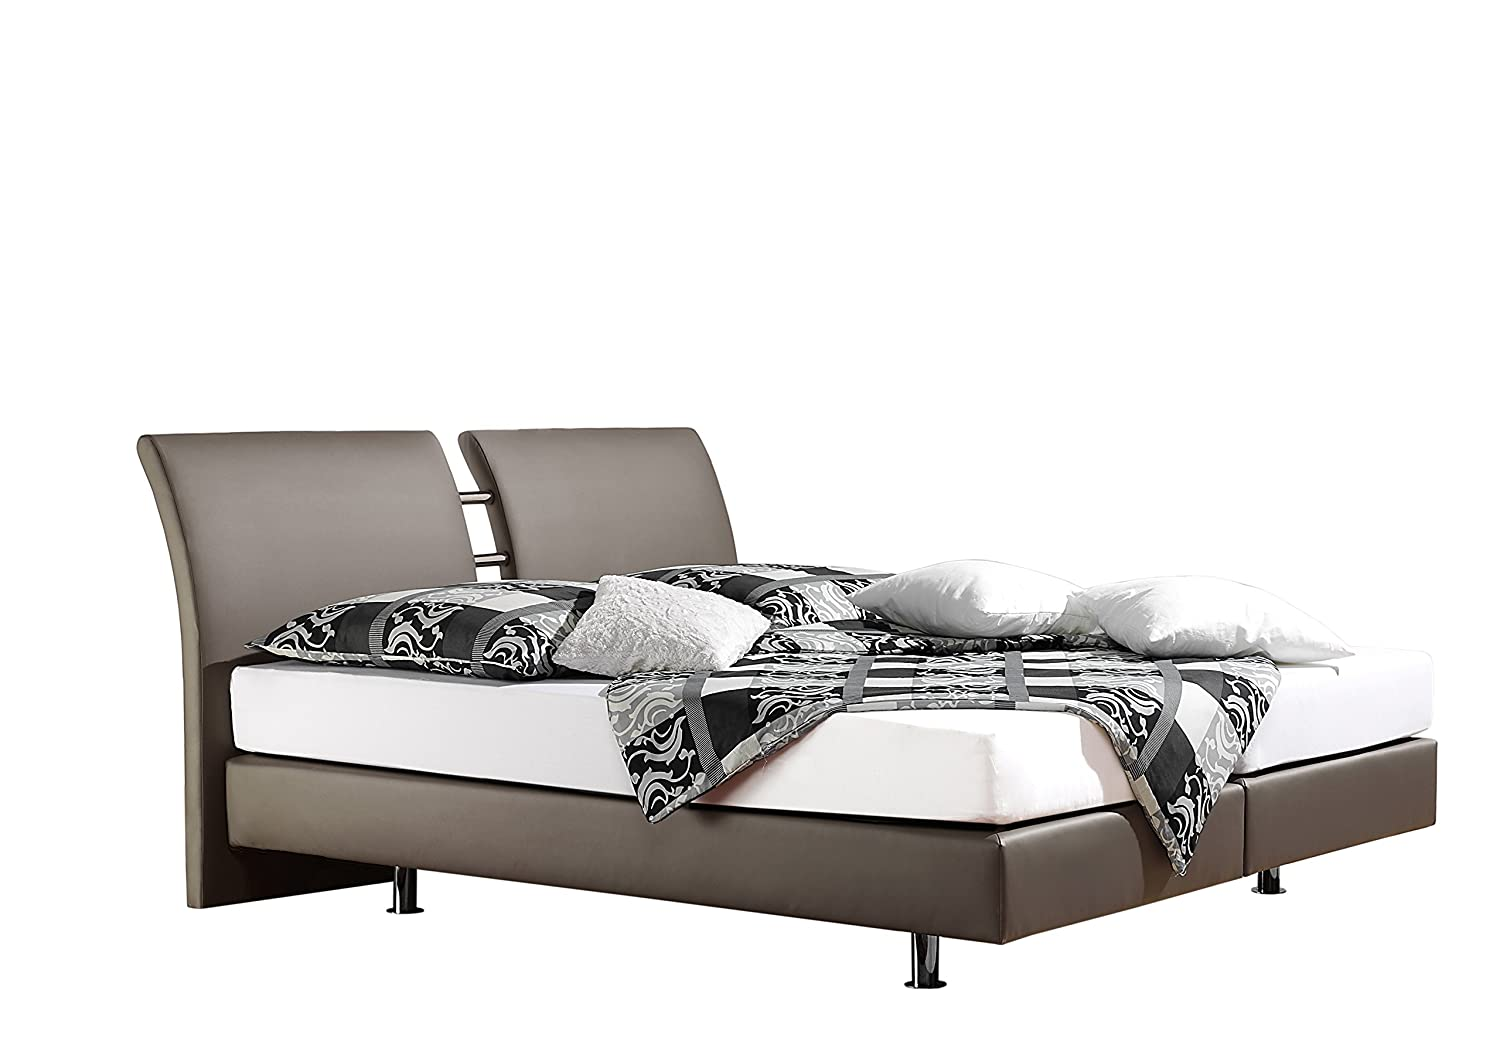 Maintal Betten 236819-4130 Boxspringbett Polo 180 x 200 cm, kunstleder taupe